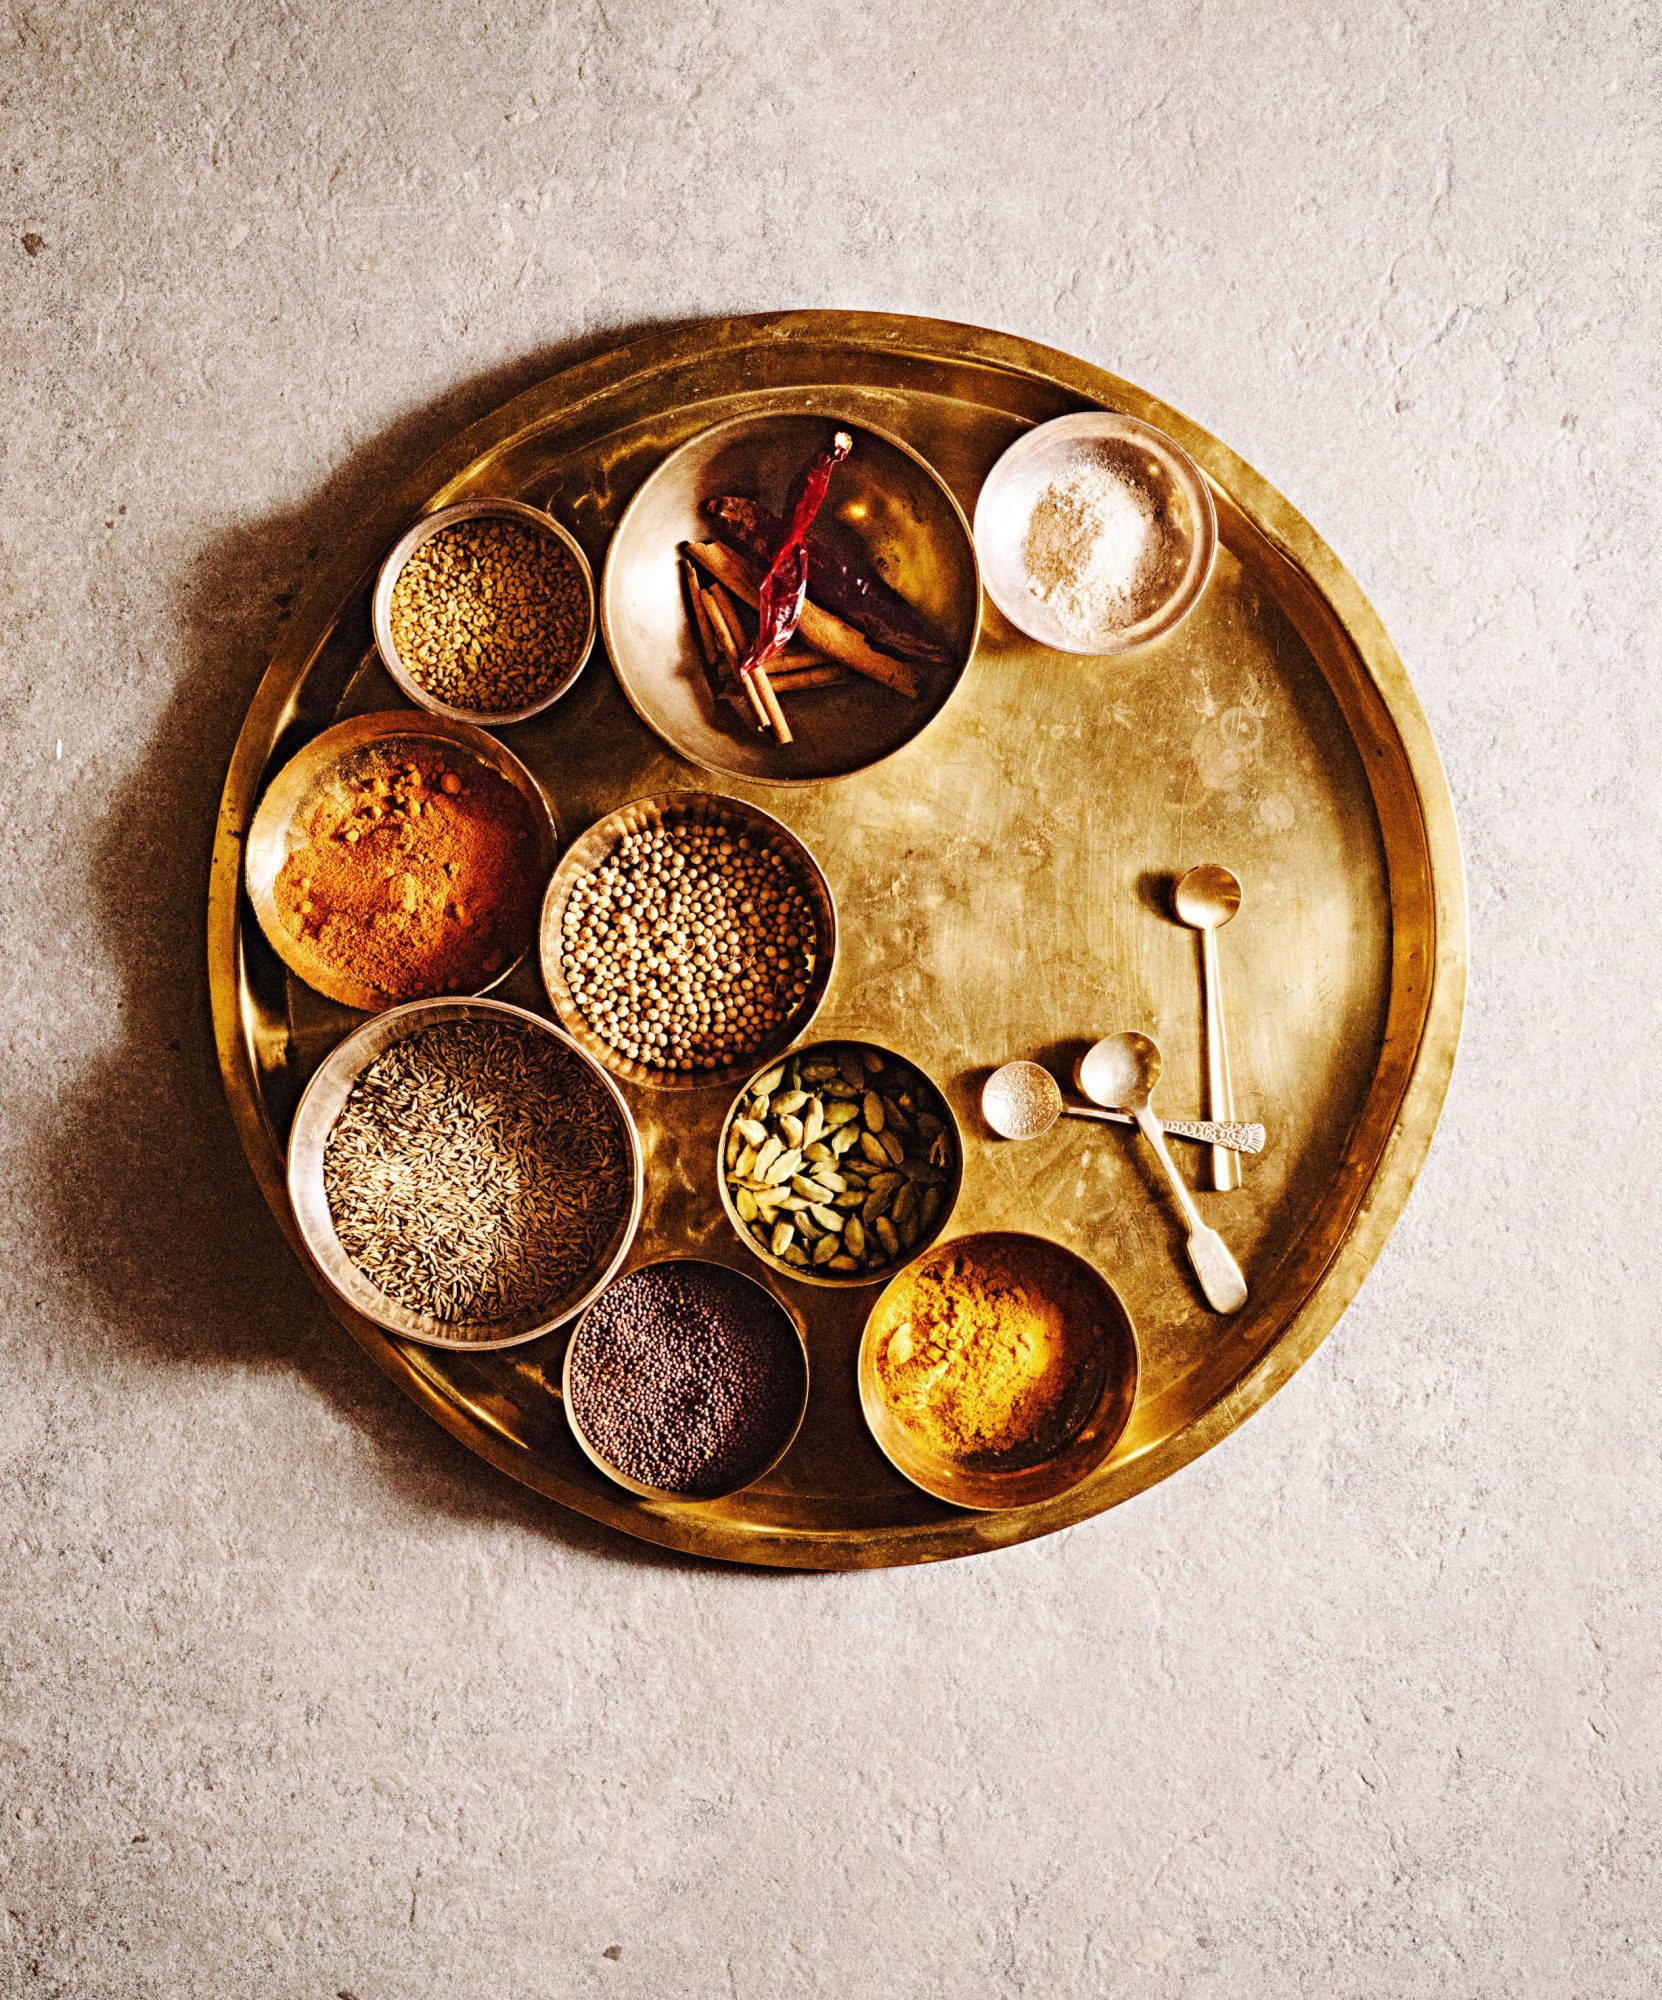 Indian Spices on Tray